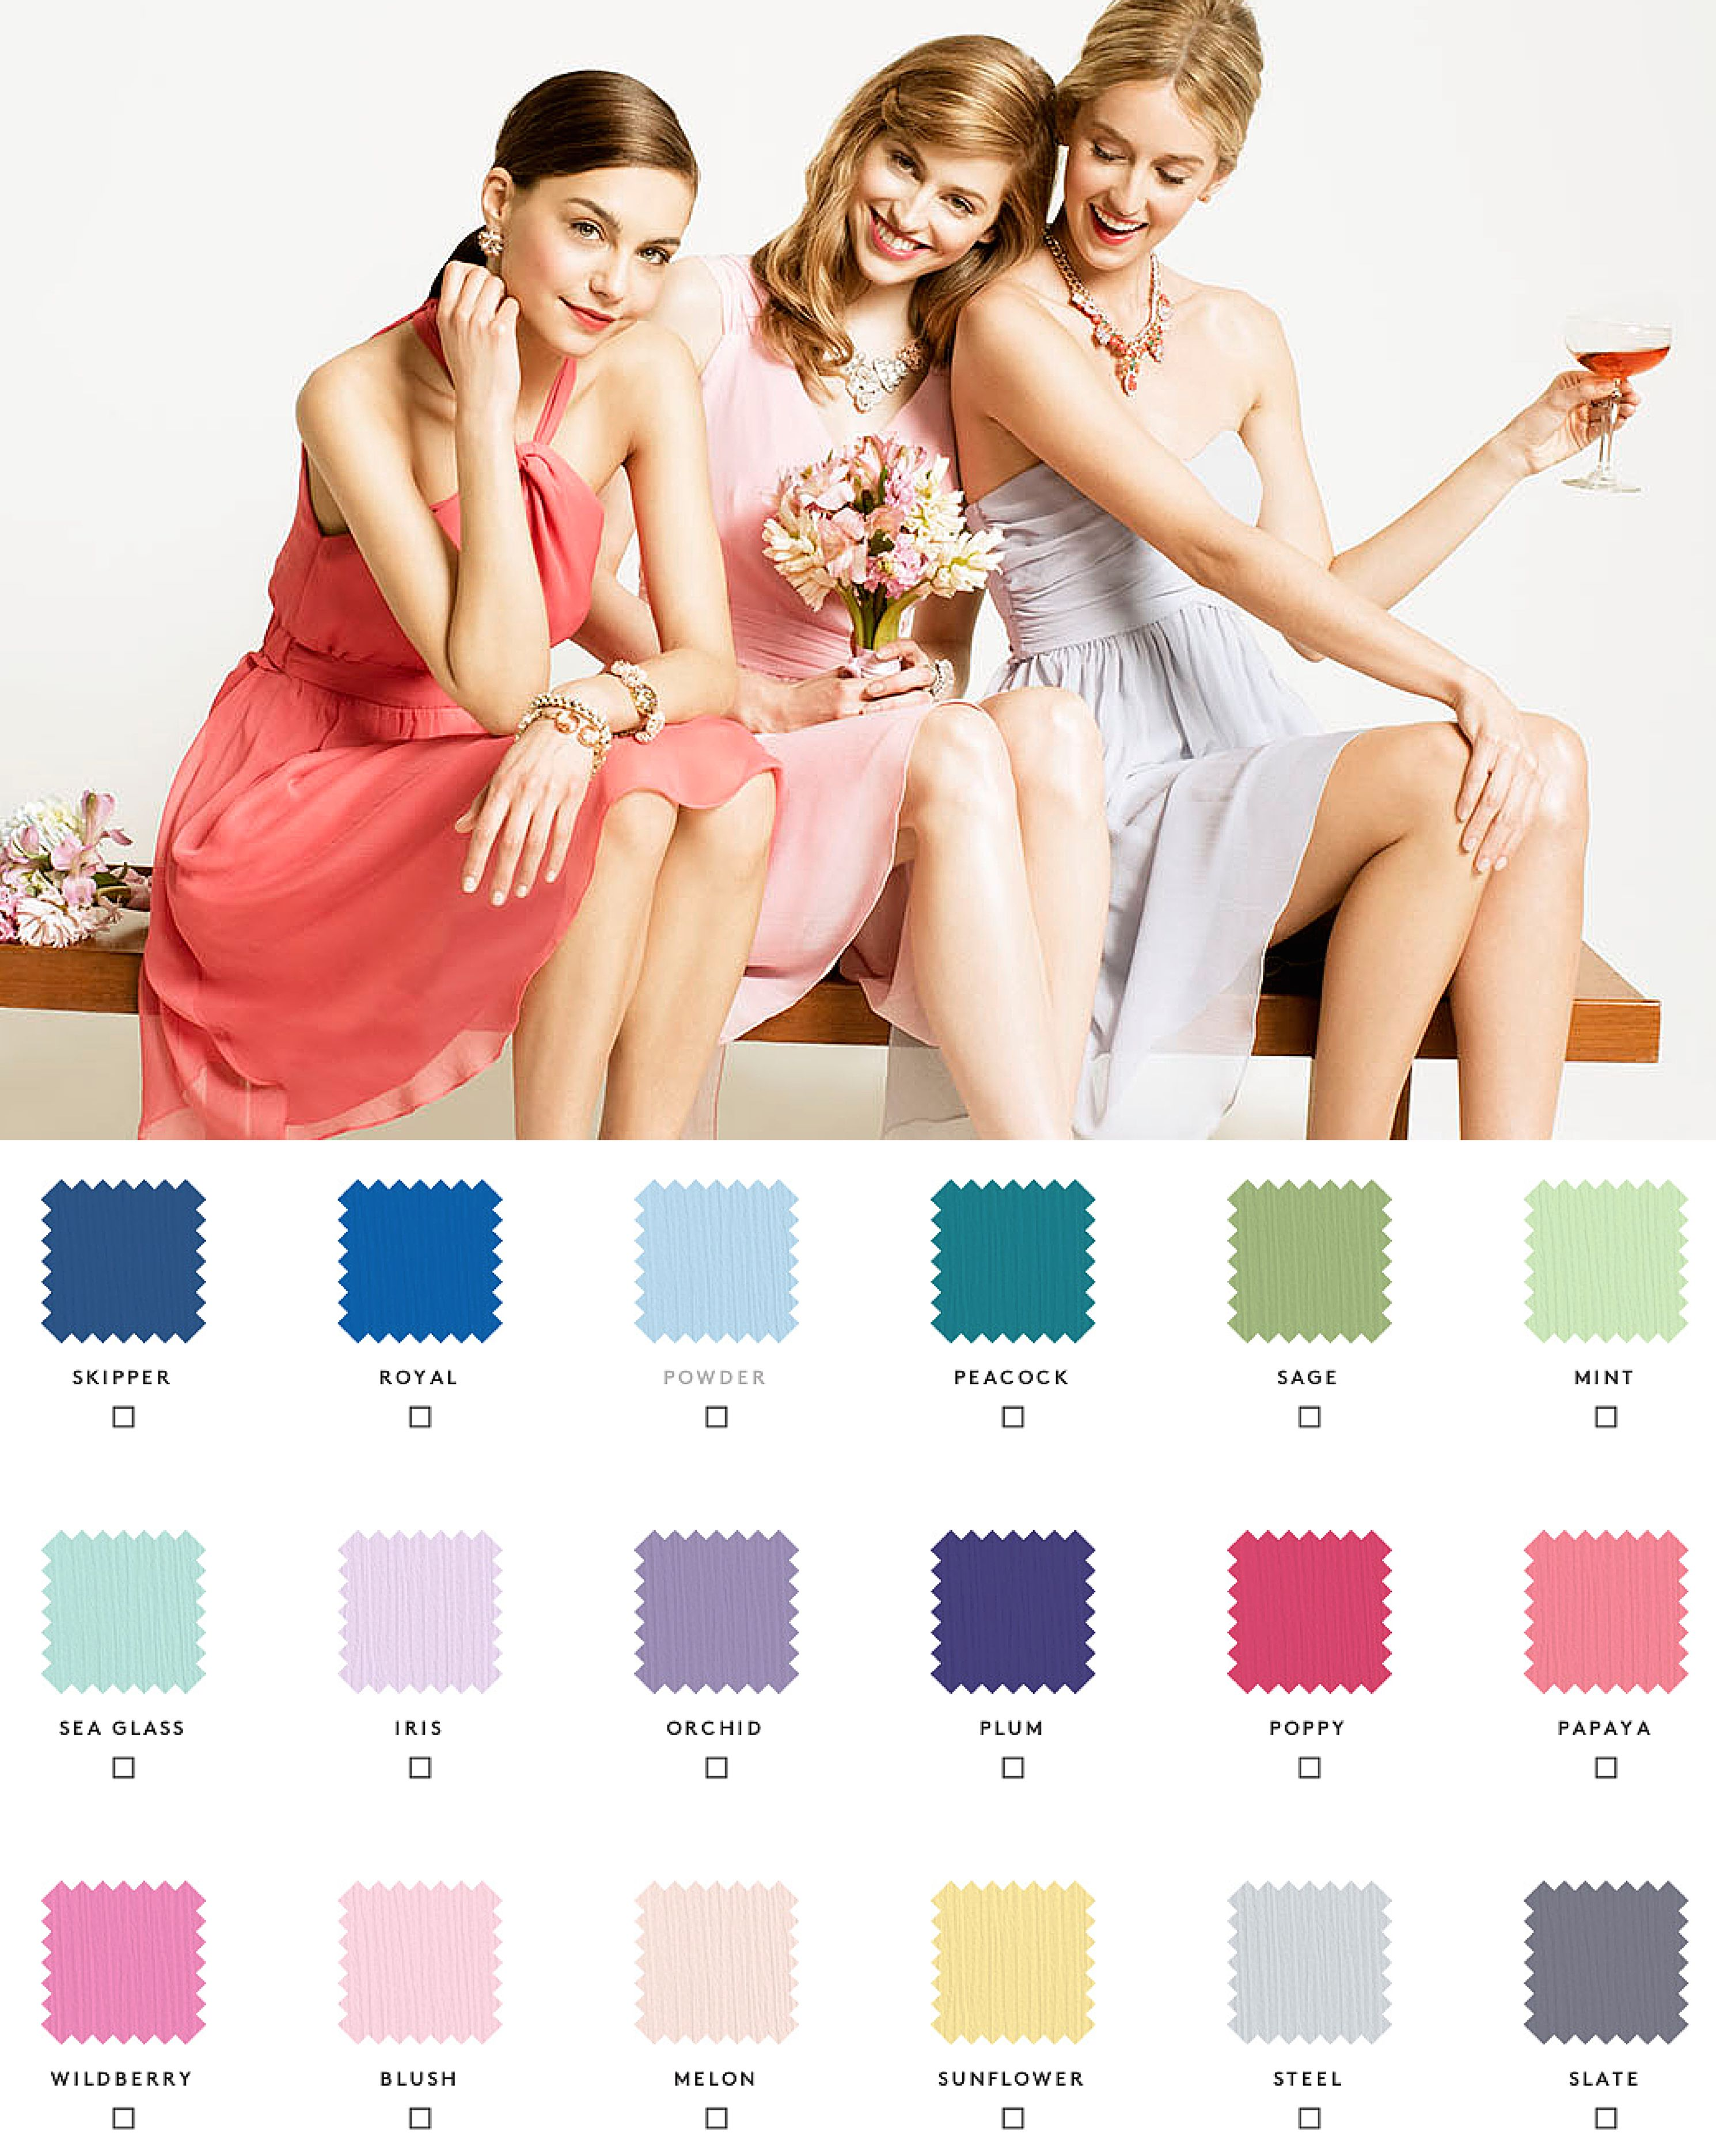 105761a279f Union Station - bridesmaids dresses you can rent! Request free color  swatches to see our shades in person.